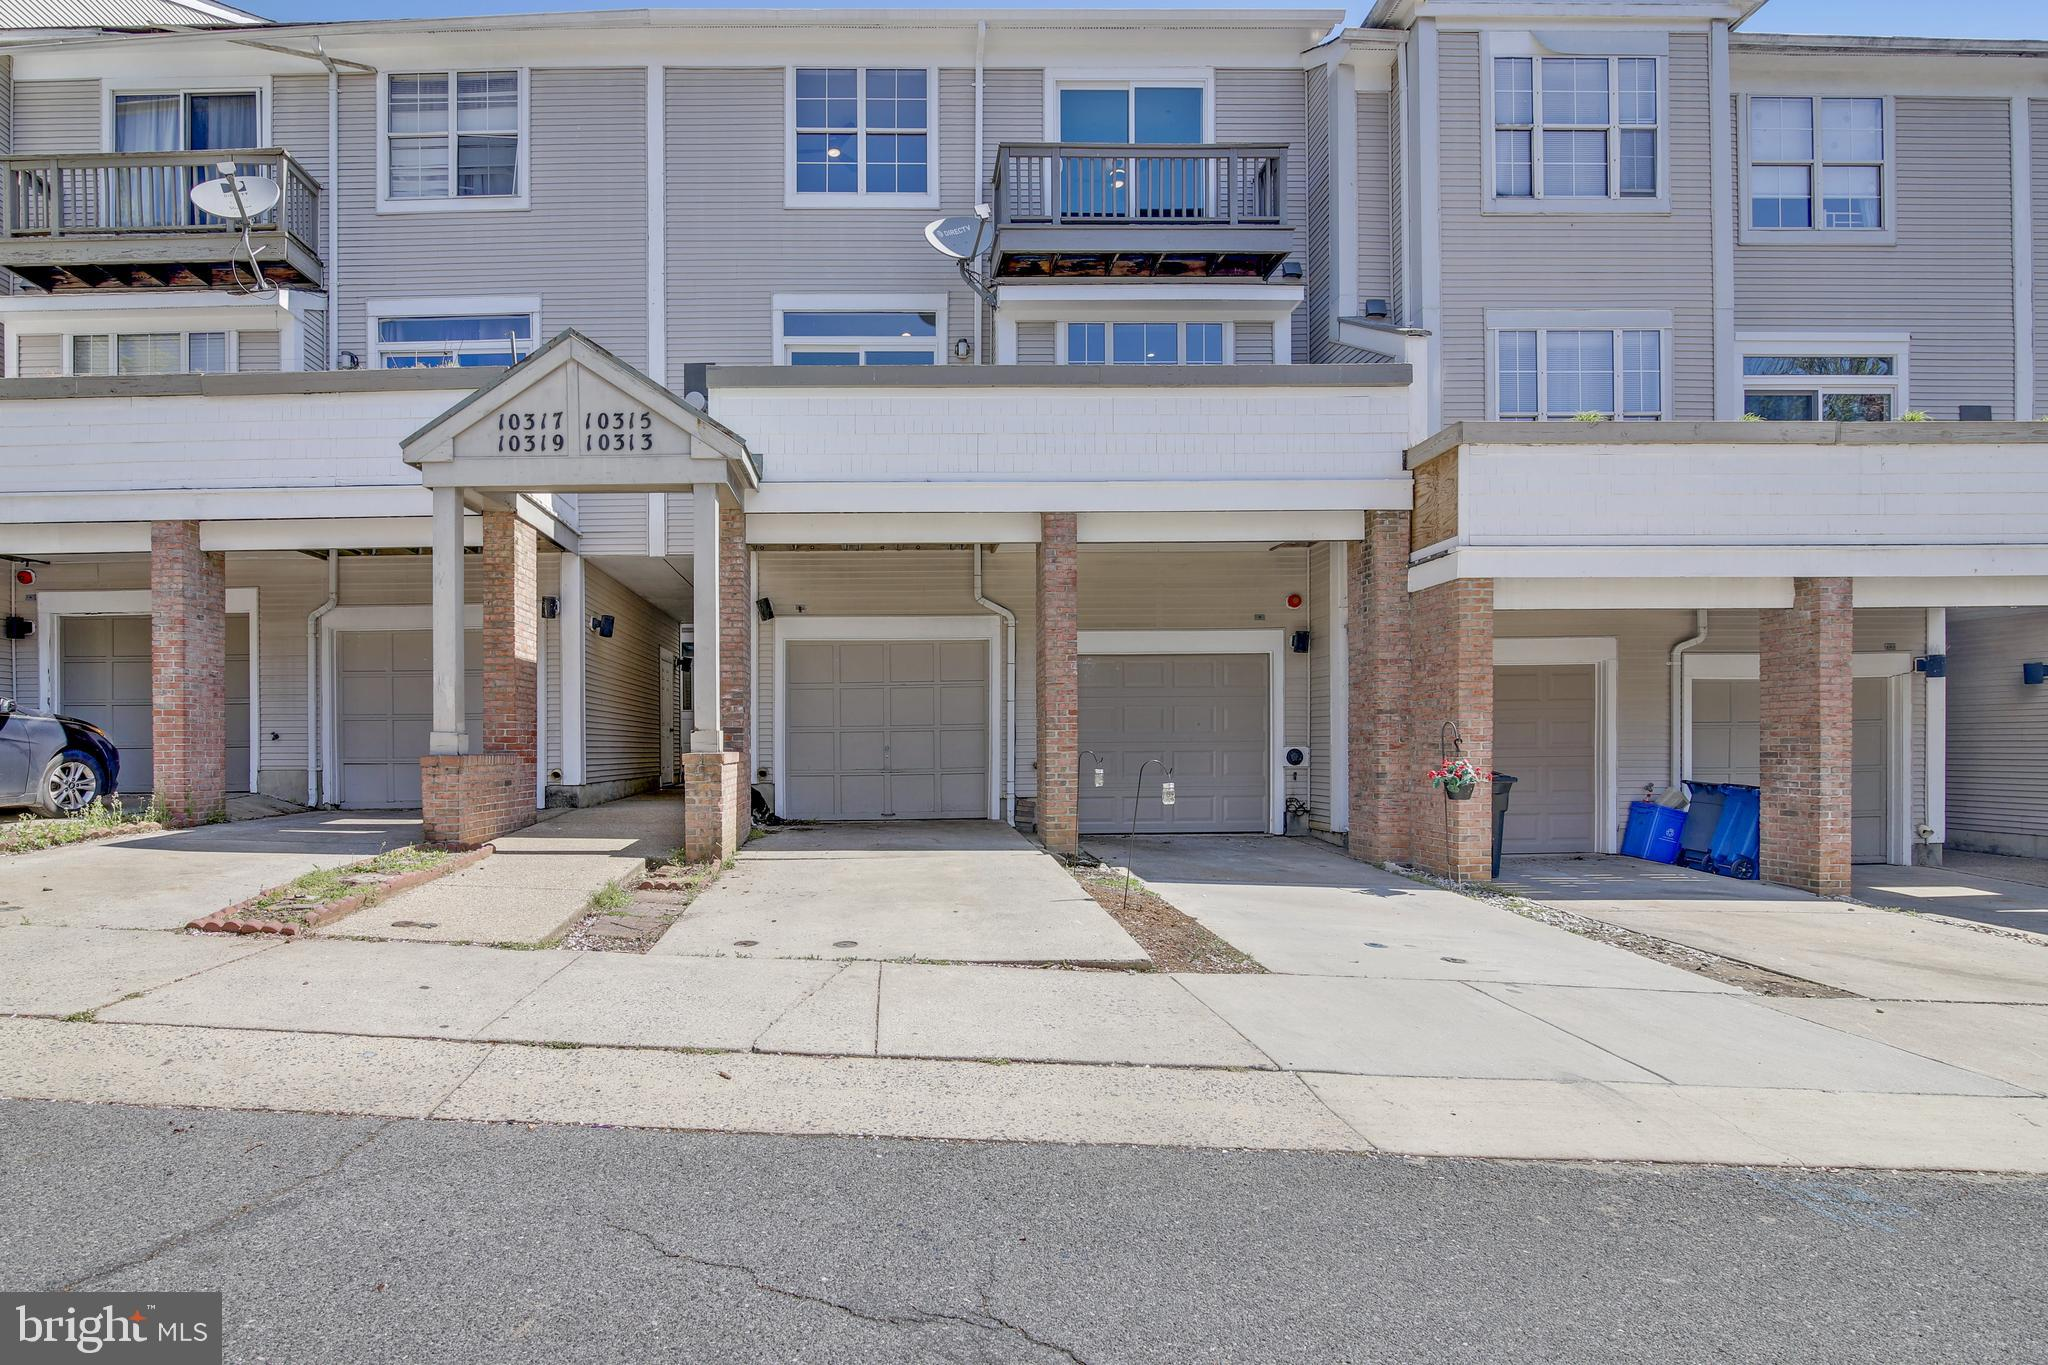 10313 ROYAL WOODS CT., GAITHERSBURG, Maryland 20886, 3 Bedrooms Bedrooms, ,3 BathroomsBathrooms,Townhouse,For Sale,10313 ROYAL WOODS CT.,MDMC753904